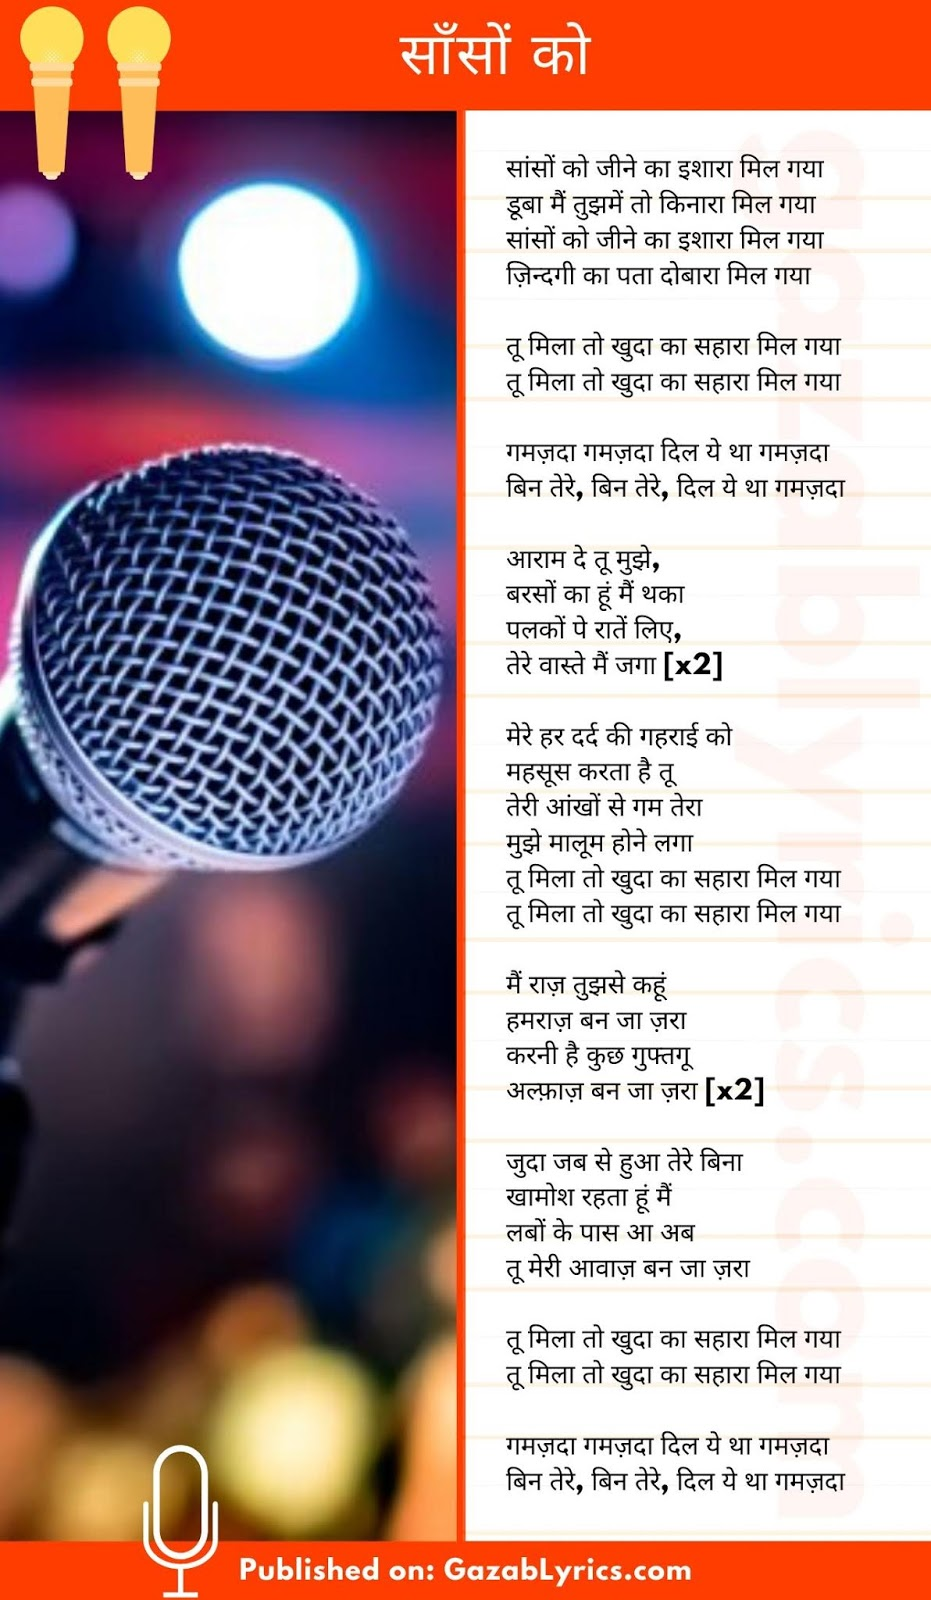 Saanson Ko song lyrics image